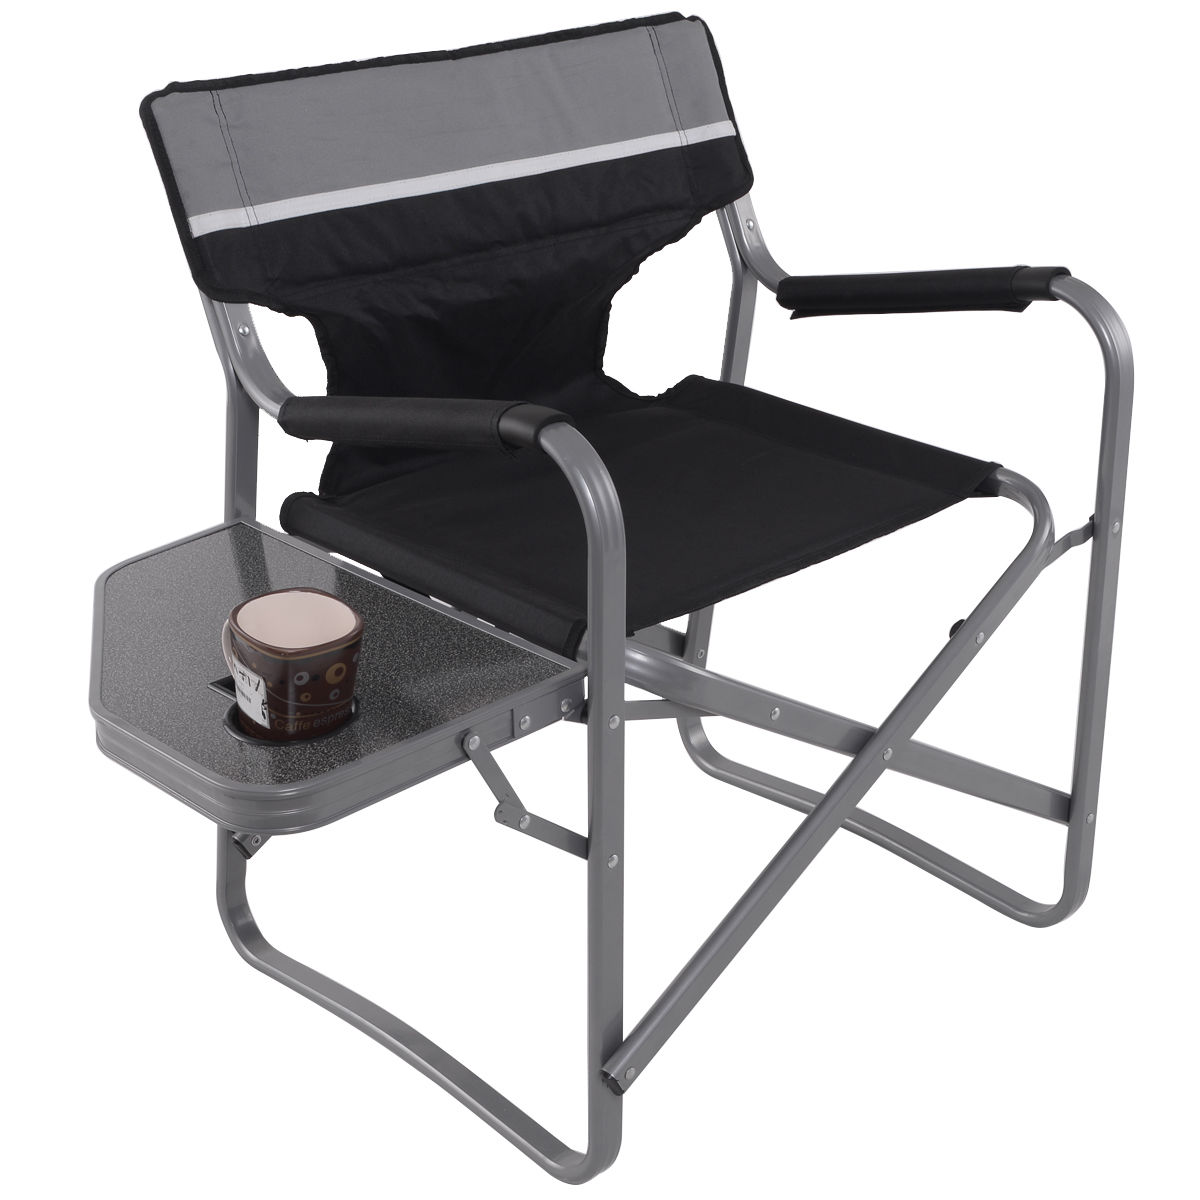 Folding Camp Chair With Side Table Us 47 13 25 Off Giantex Director S Chair Folding Side Table Outdoor Camping Fishing Chair With Cup Holder Portable Director Chair Op3208 In Beach